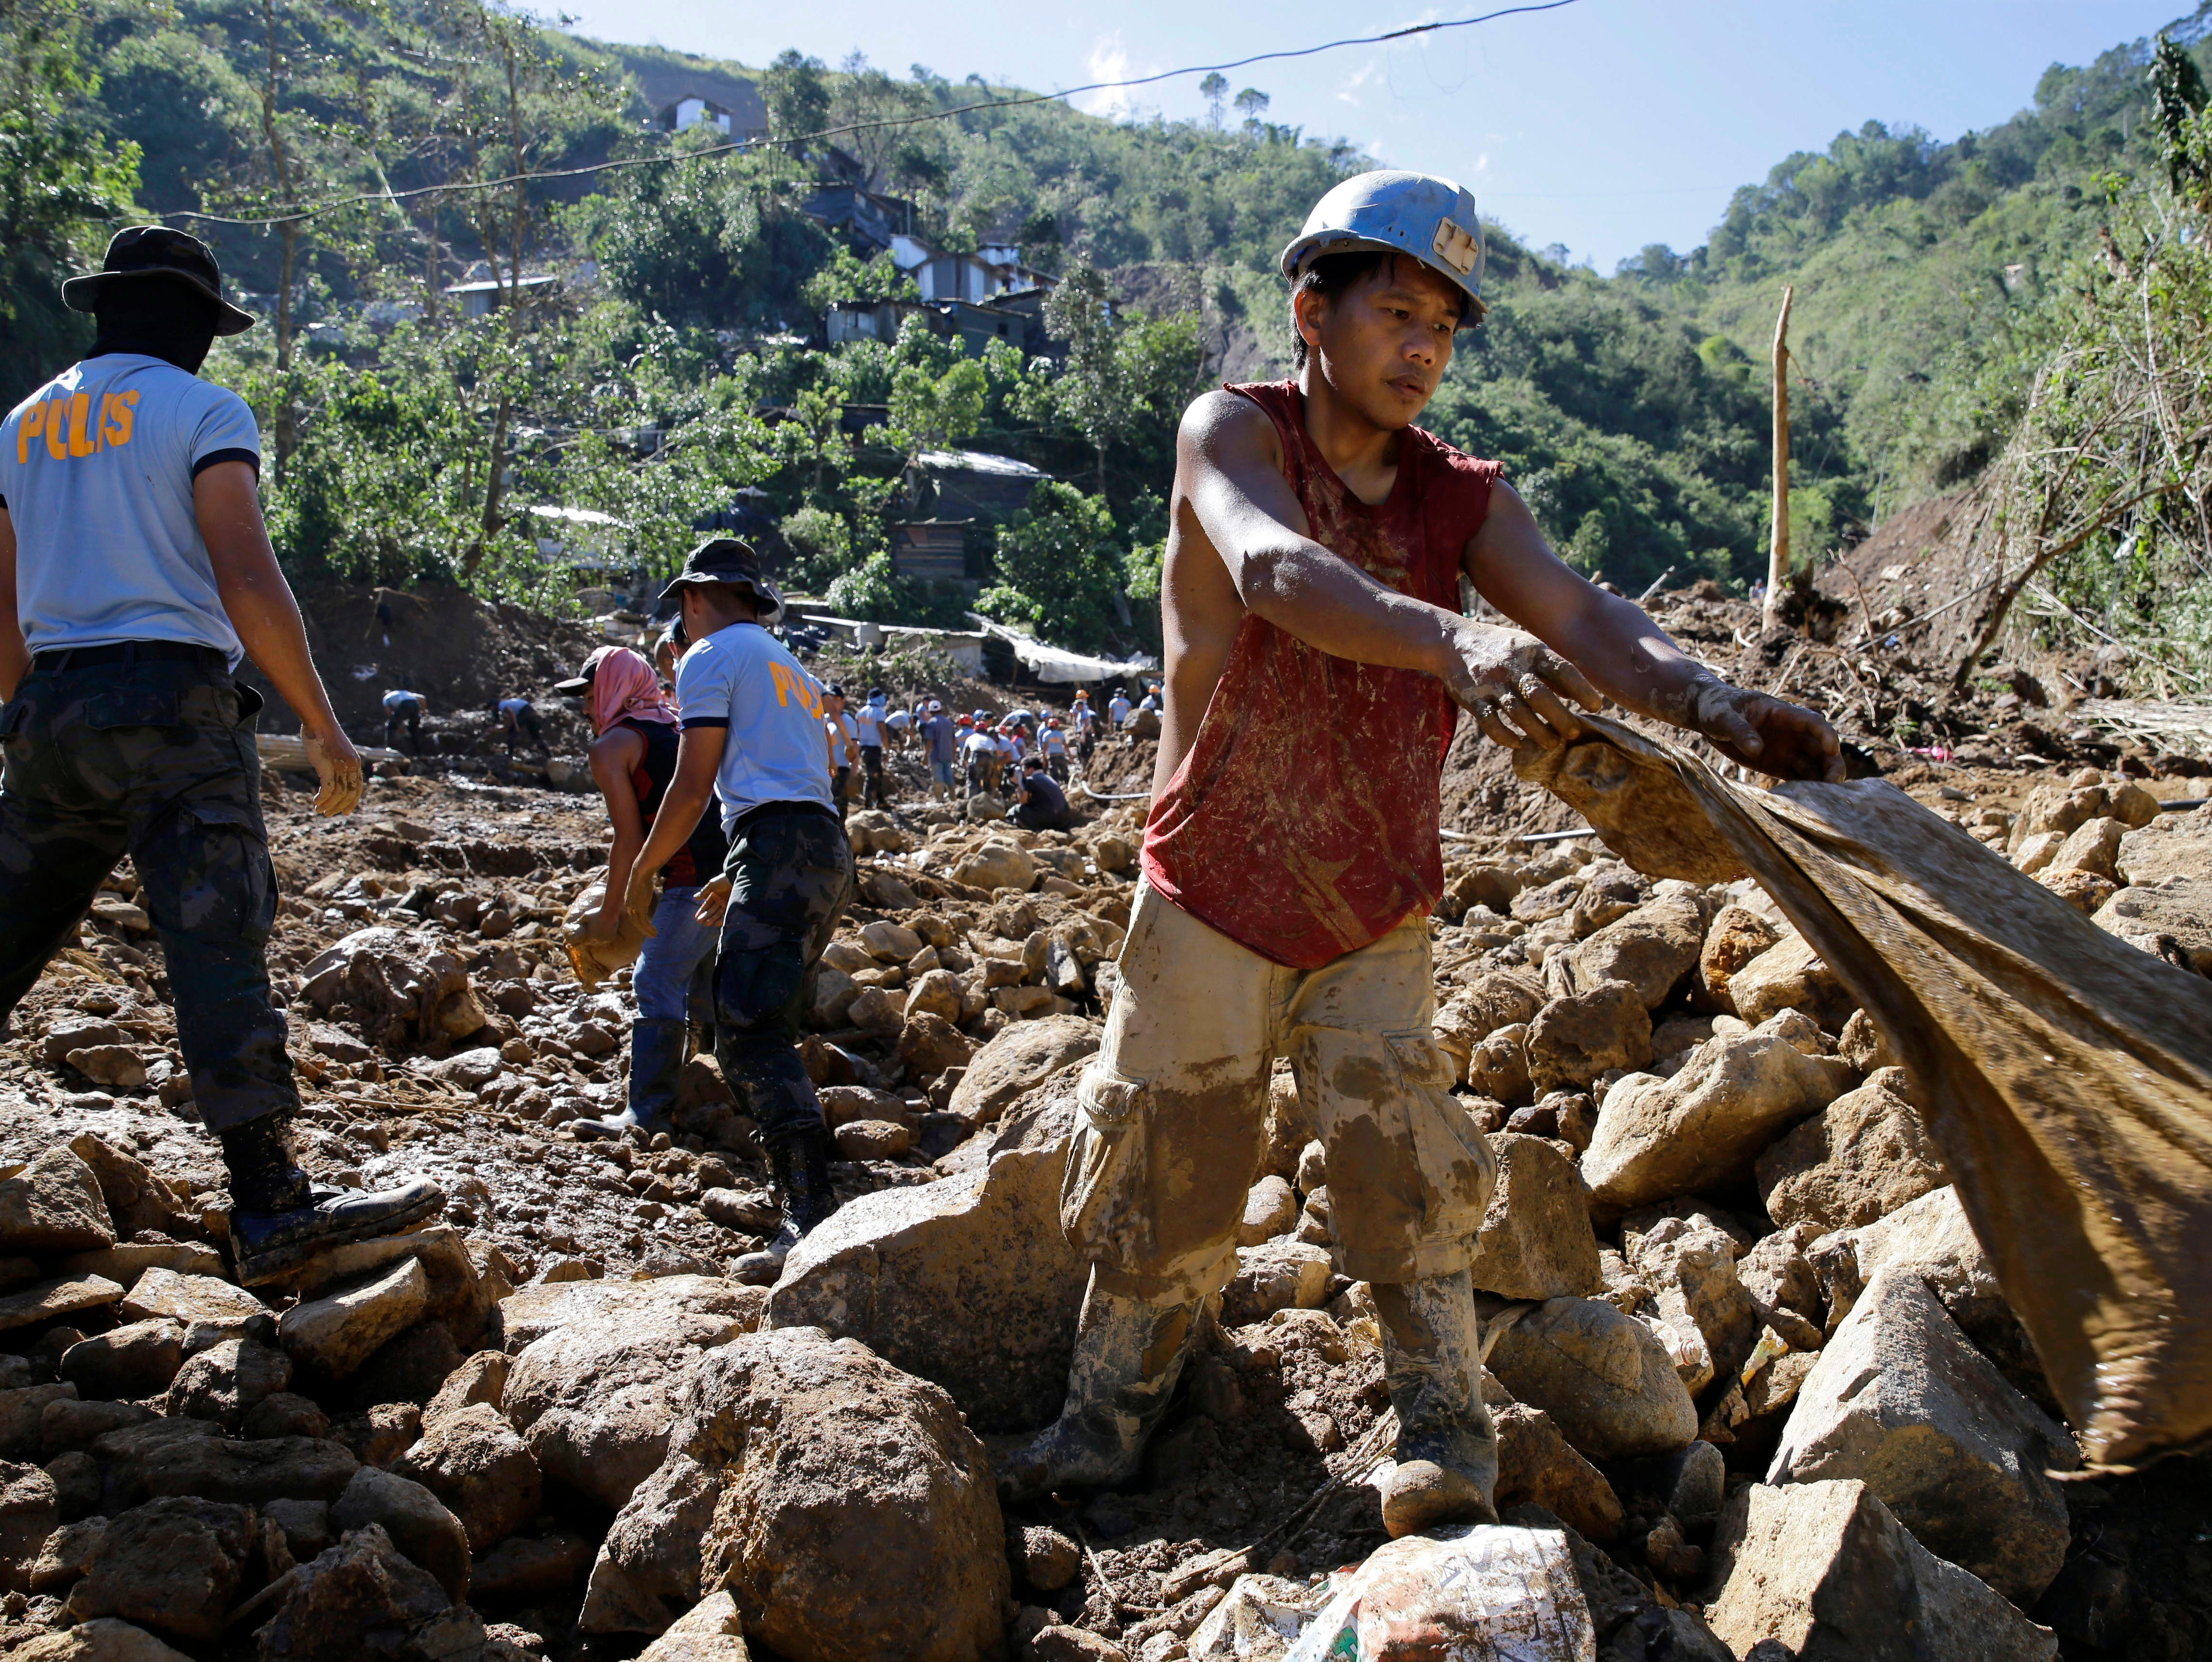 A Filipino miner, right, joins search operations at the site where victims are believed to have been buried by a landslide triggered by Typhoon Mangkhut as it lashed across Itogon, Benguet province, northern Philippines, Tuesday, Sept. 18, 2018.